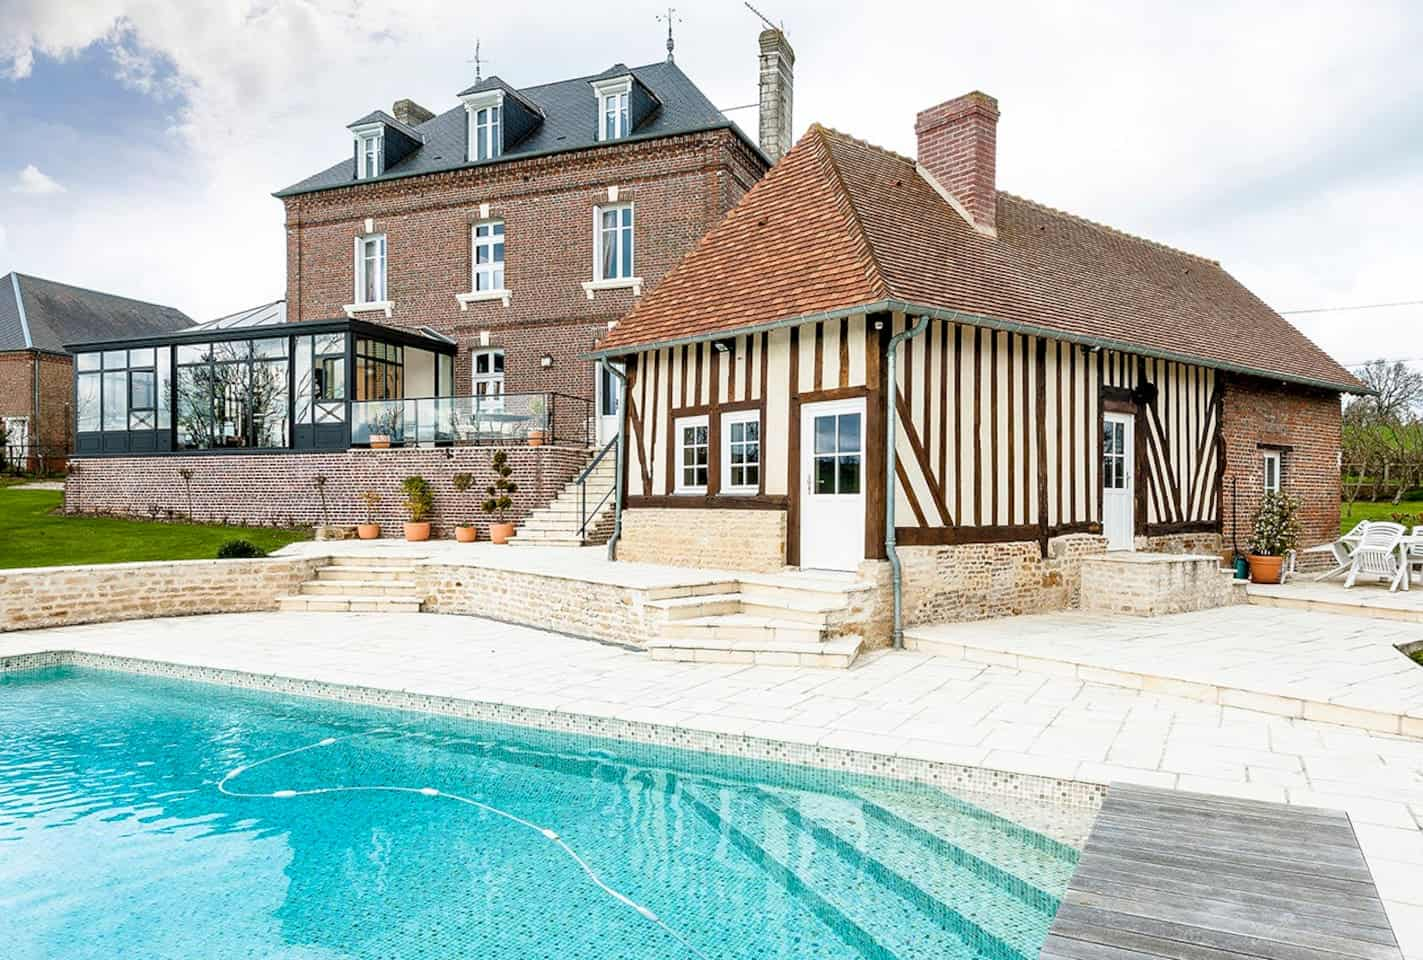 Image of Airbnb rental in Normandy, France